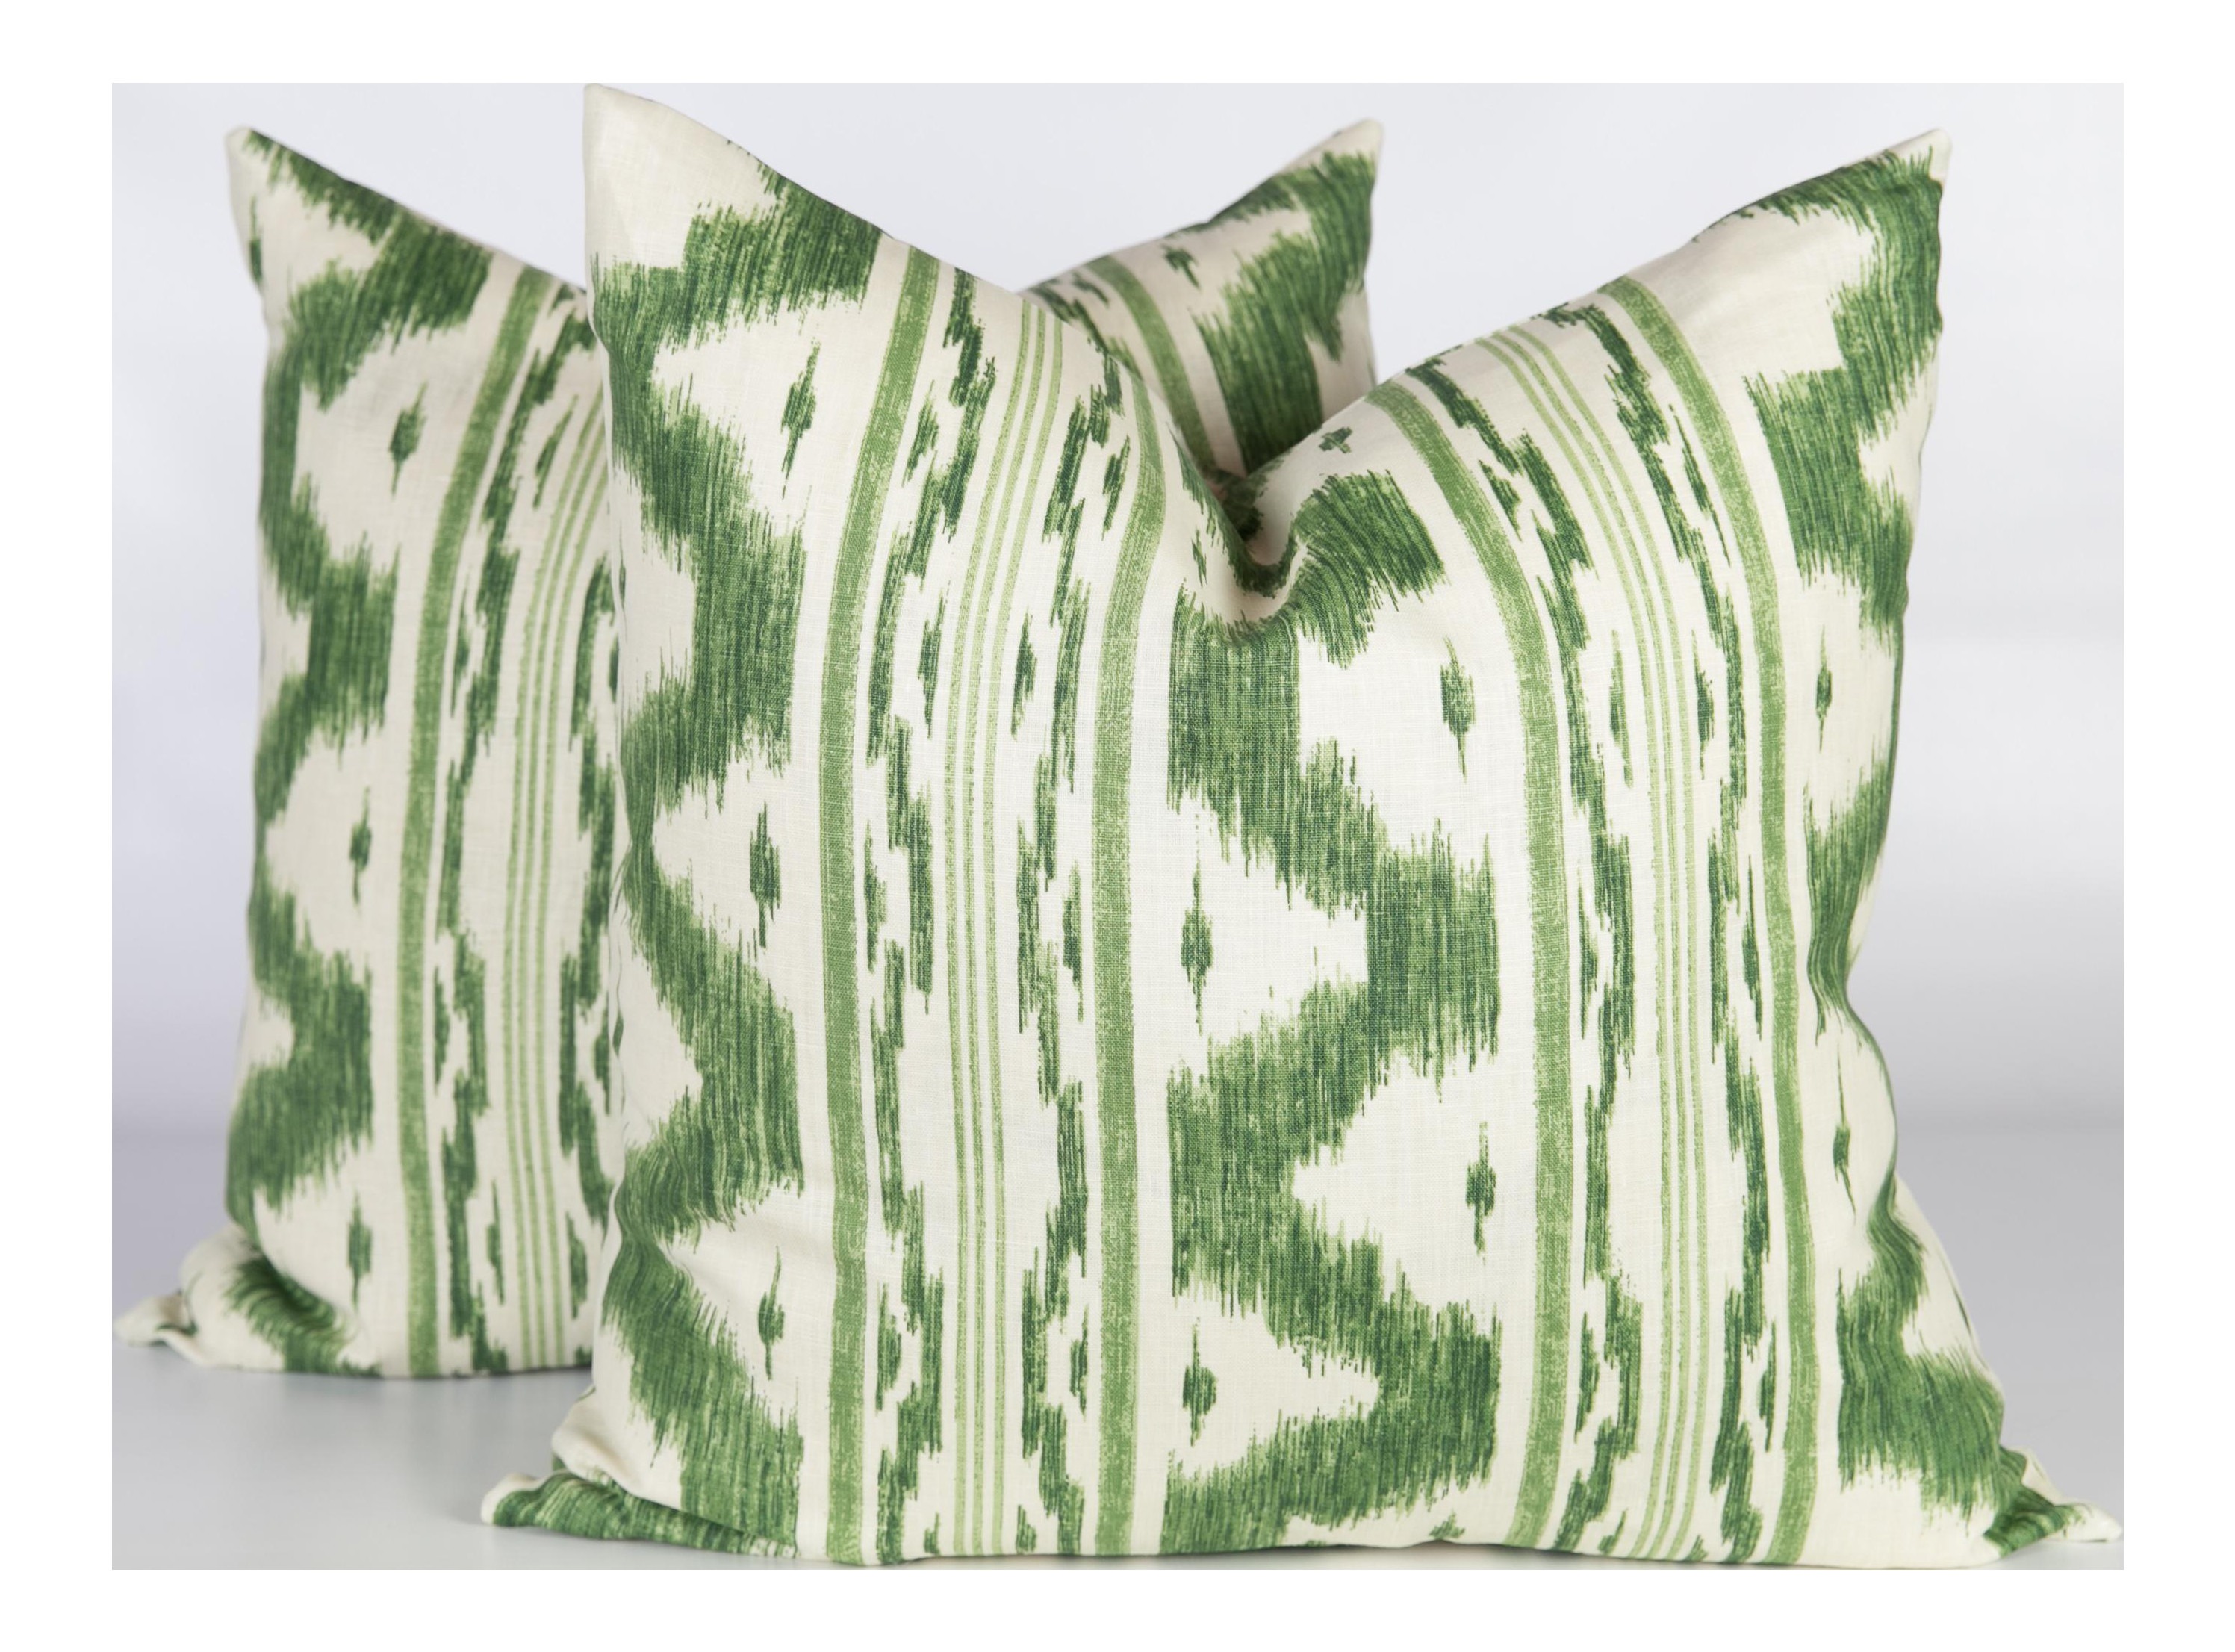 Dark Grey Vase Of Dark Green Pillows New Cool Vases Flower Vase Coloring Page Pages In Dark Green Pillows Elegant Ivory and Green Linen Ikat Pillows A Pair Of Dark Green Pillows